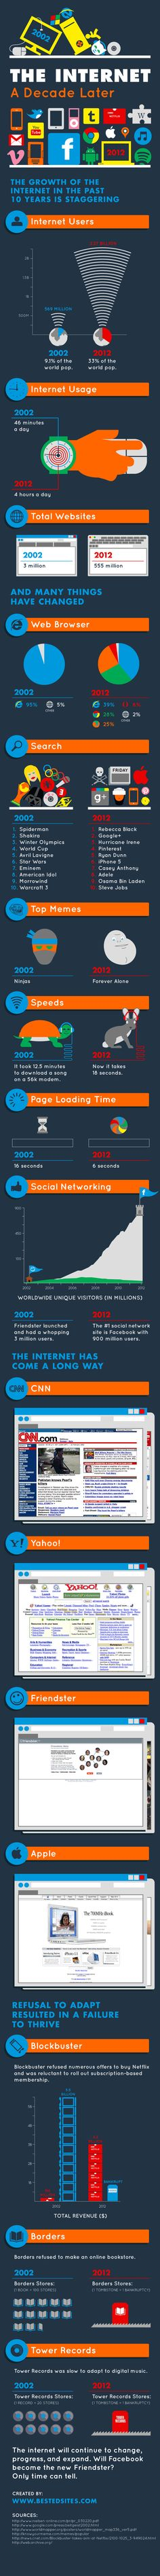 Internet between 2002 and 2012